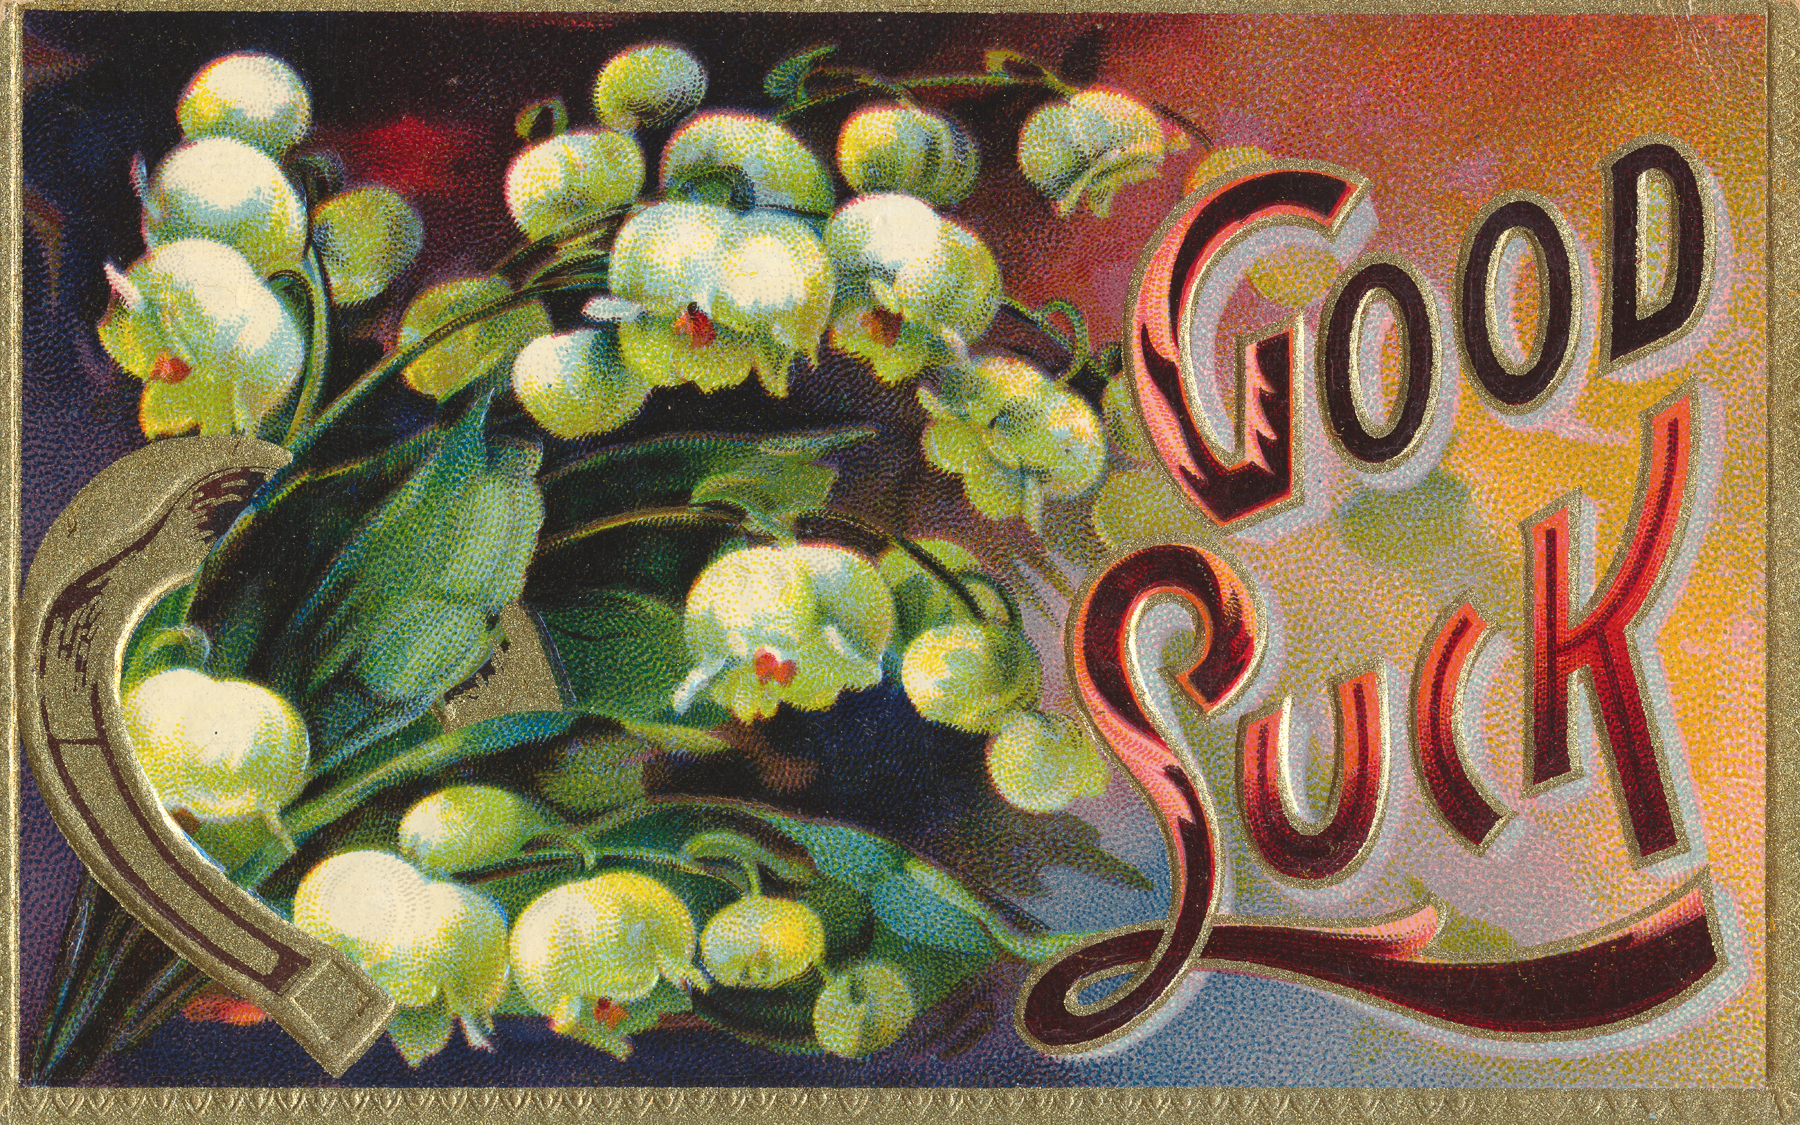 Vintage Good Luck Card, 1910, Old, Paper, Page, HQ Photo